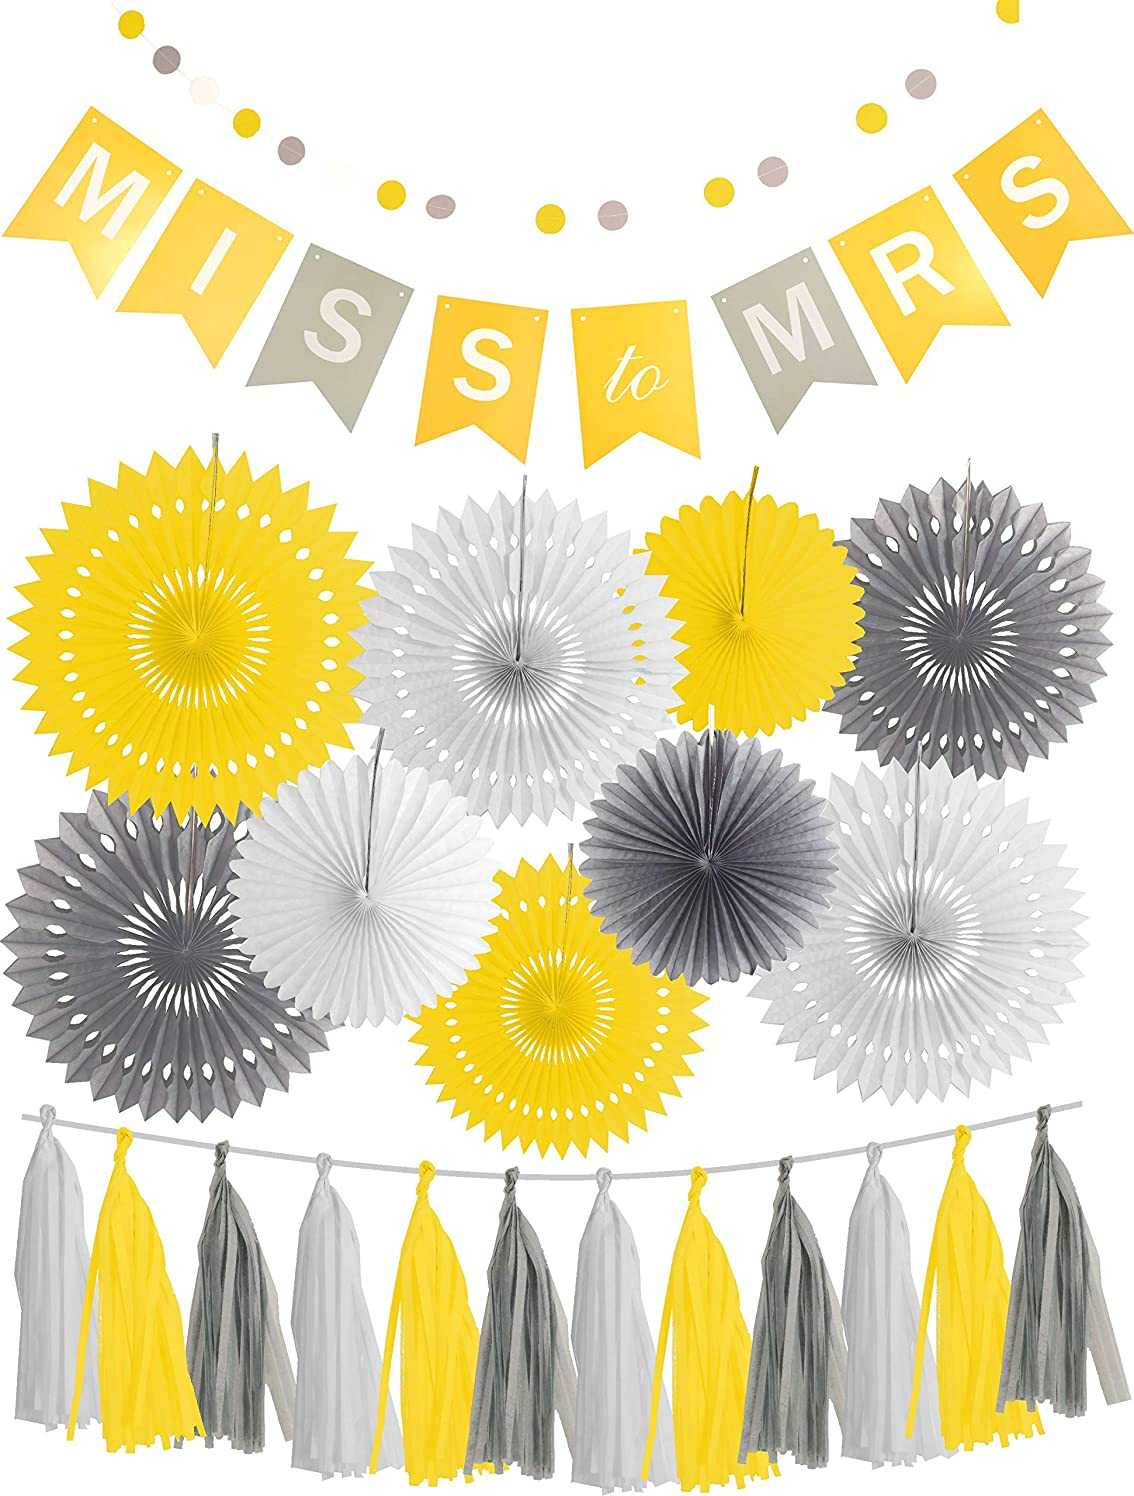 Bridal Shower - Miss to MRS MISS TO MRS DECORATIONS- BACHELORETTE PARTY DECORATIONS - BRIDAL SHOWER DECORATIONS Yellow Grey White Set